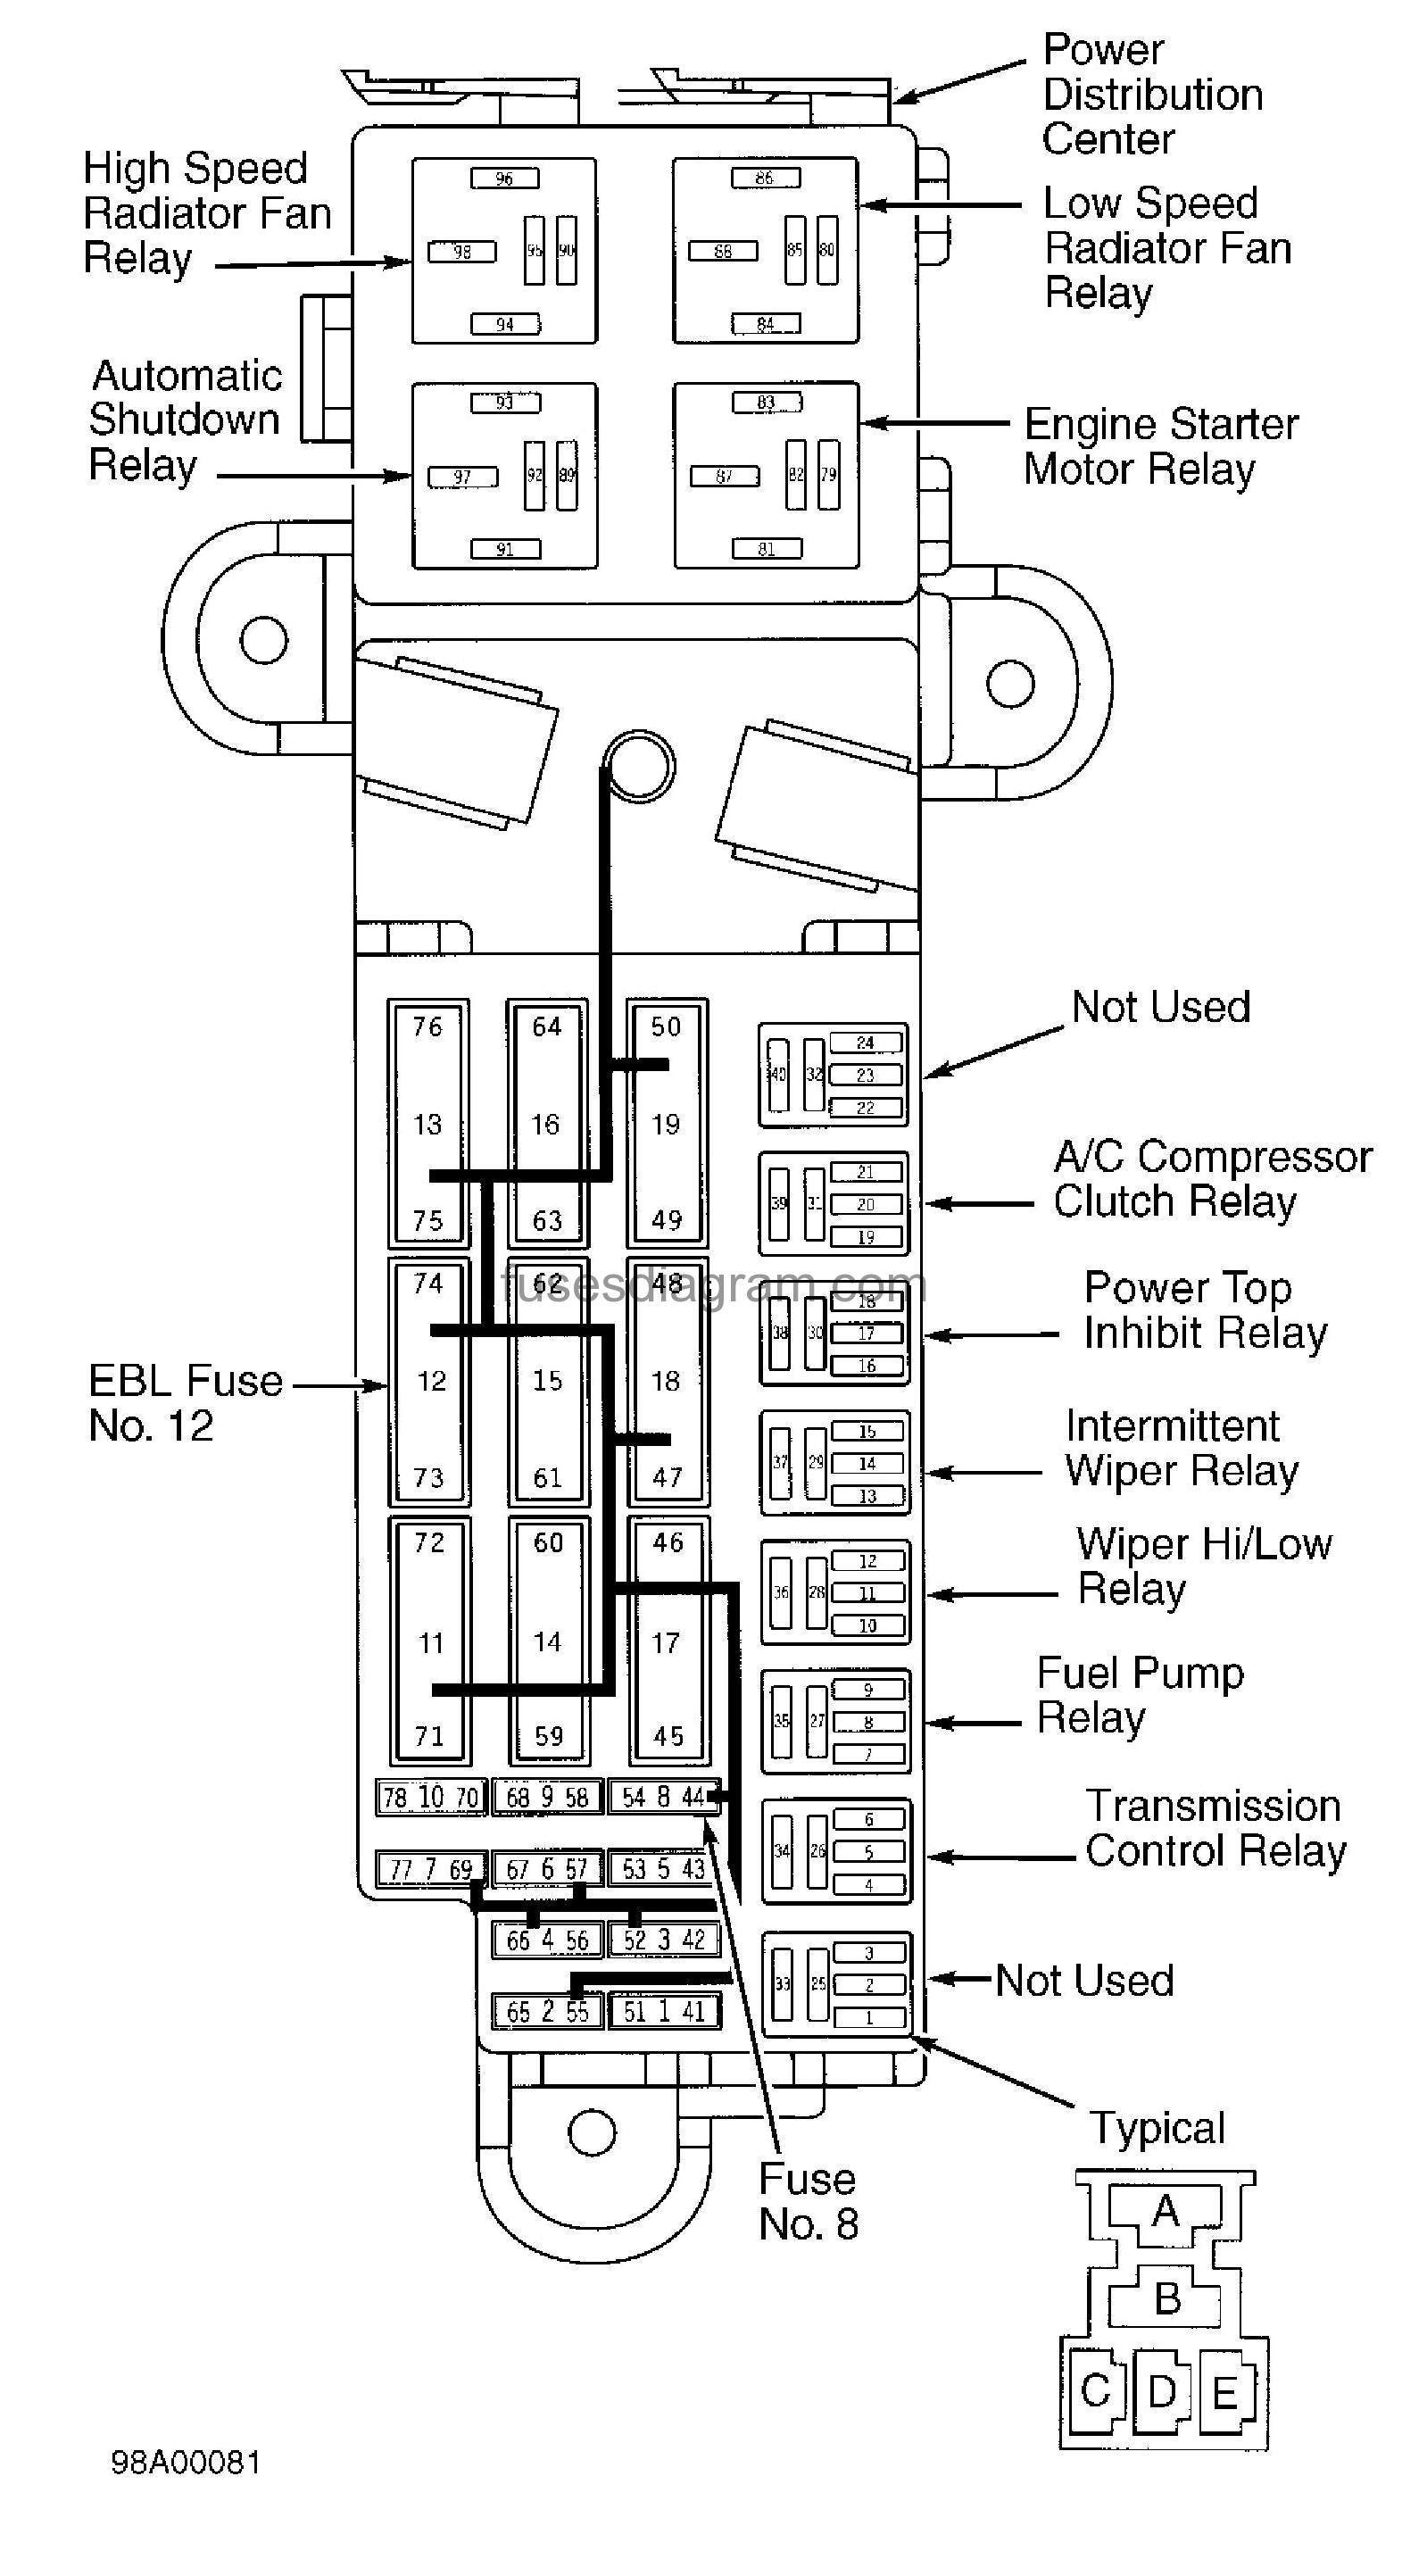 Fuse box diagram Dodge Stratus